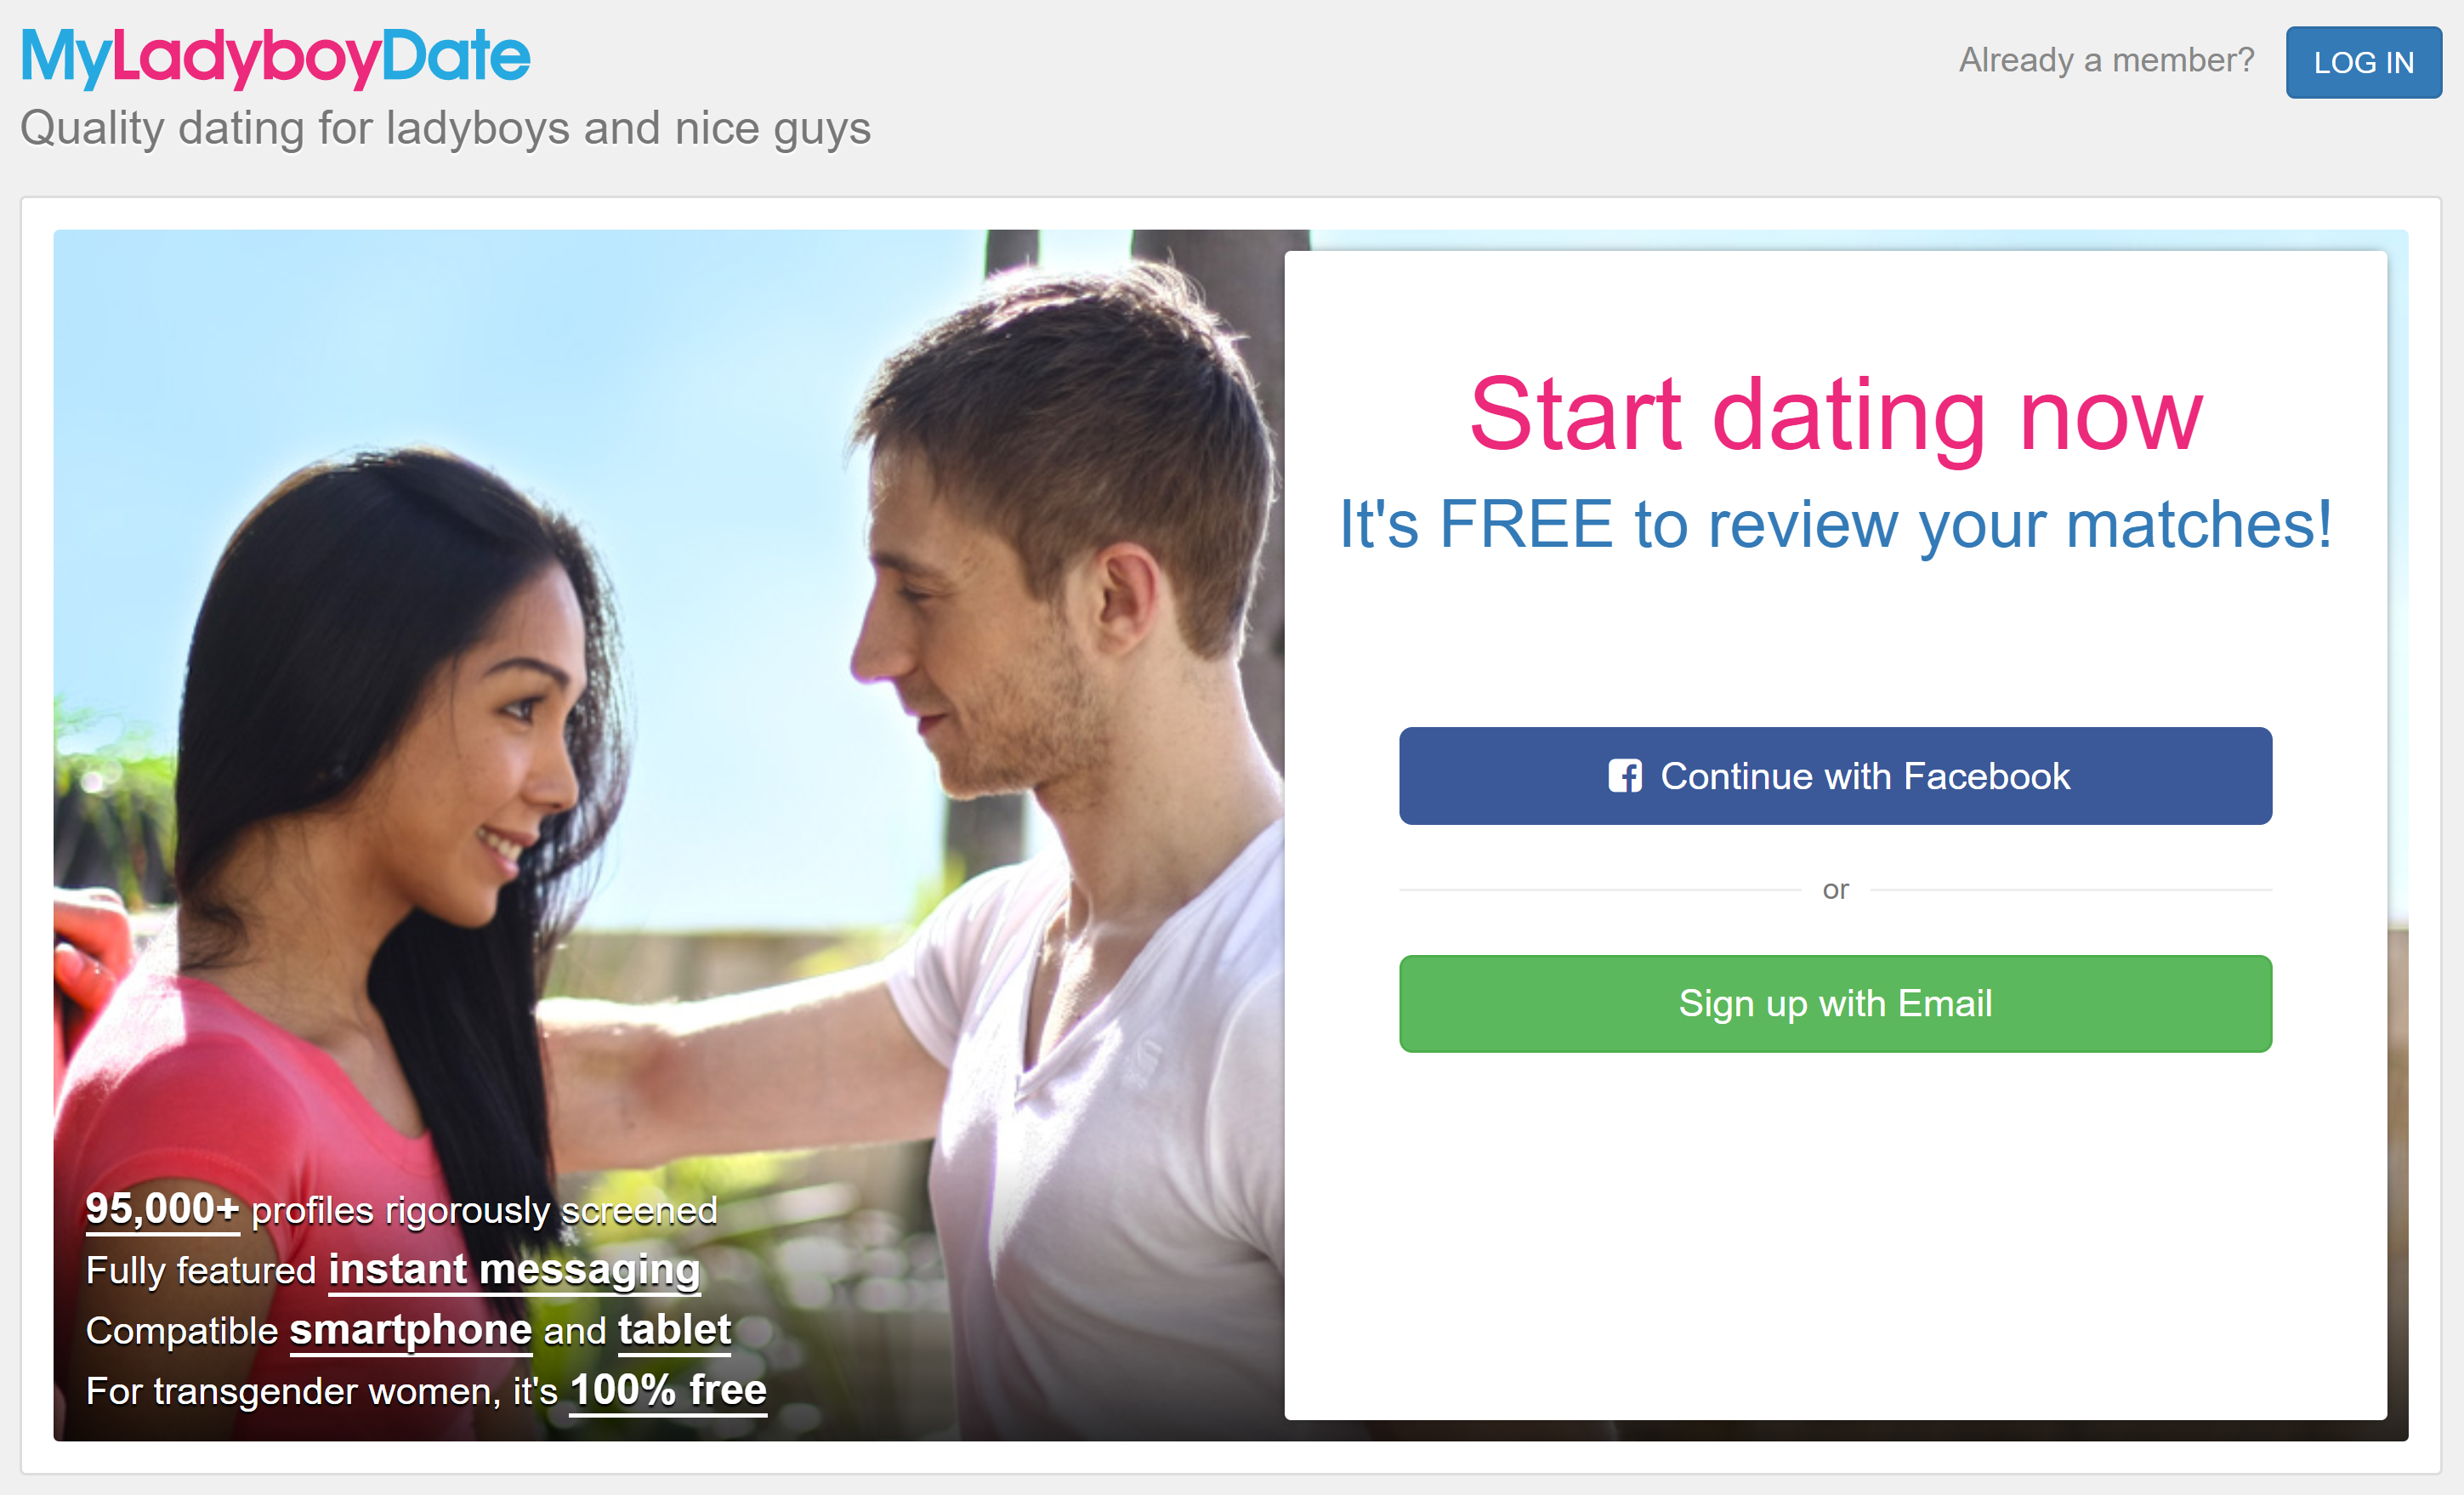 Online dating site scam dupes edmonton fella out